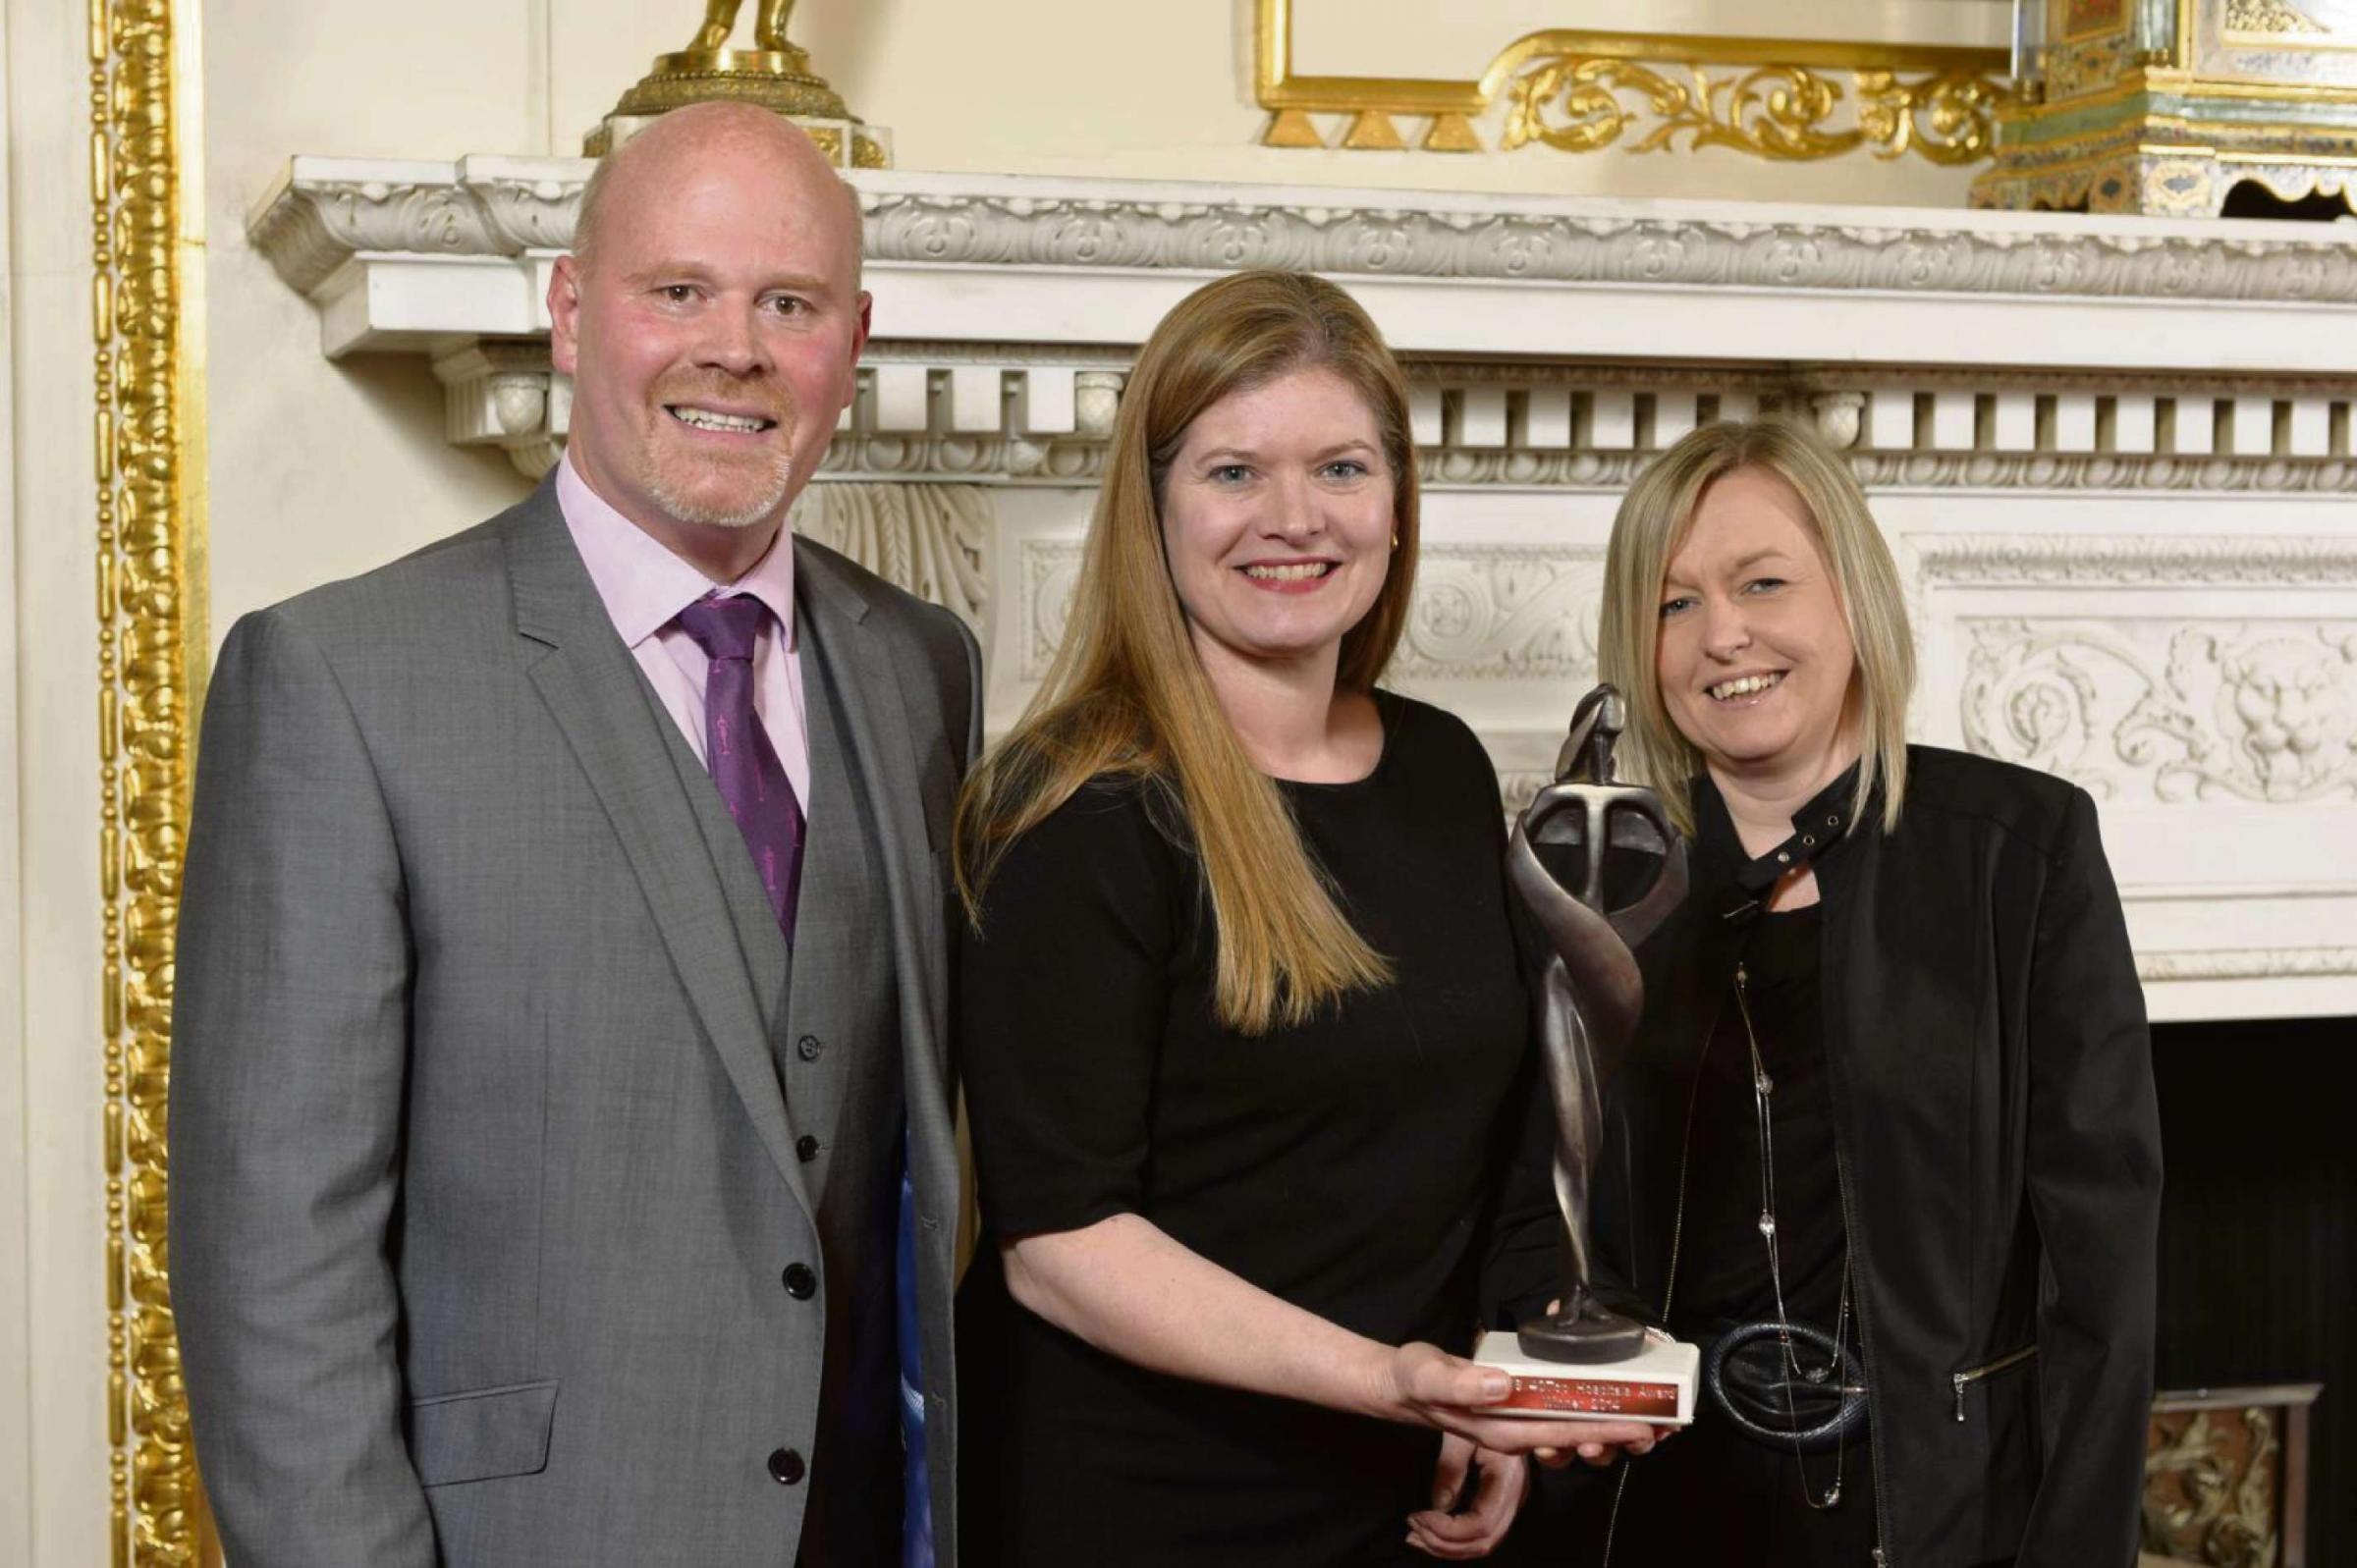 Airedale Hospital is named as one of the CHKS 40Top Hospitals 2014. Picture shows from the left are CHKS managing director Jason Harris, Airedale nurse consultant Rachel Binks and telemedicine manager Marie Buchan